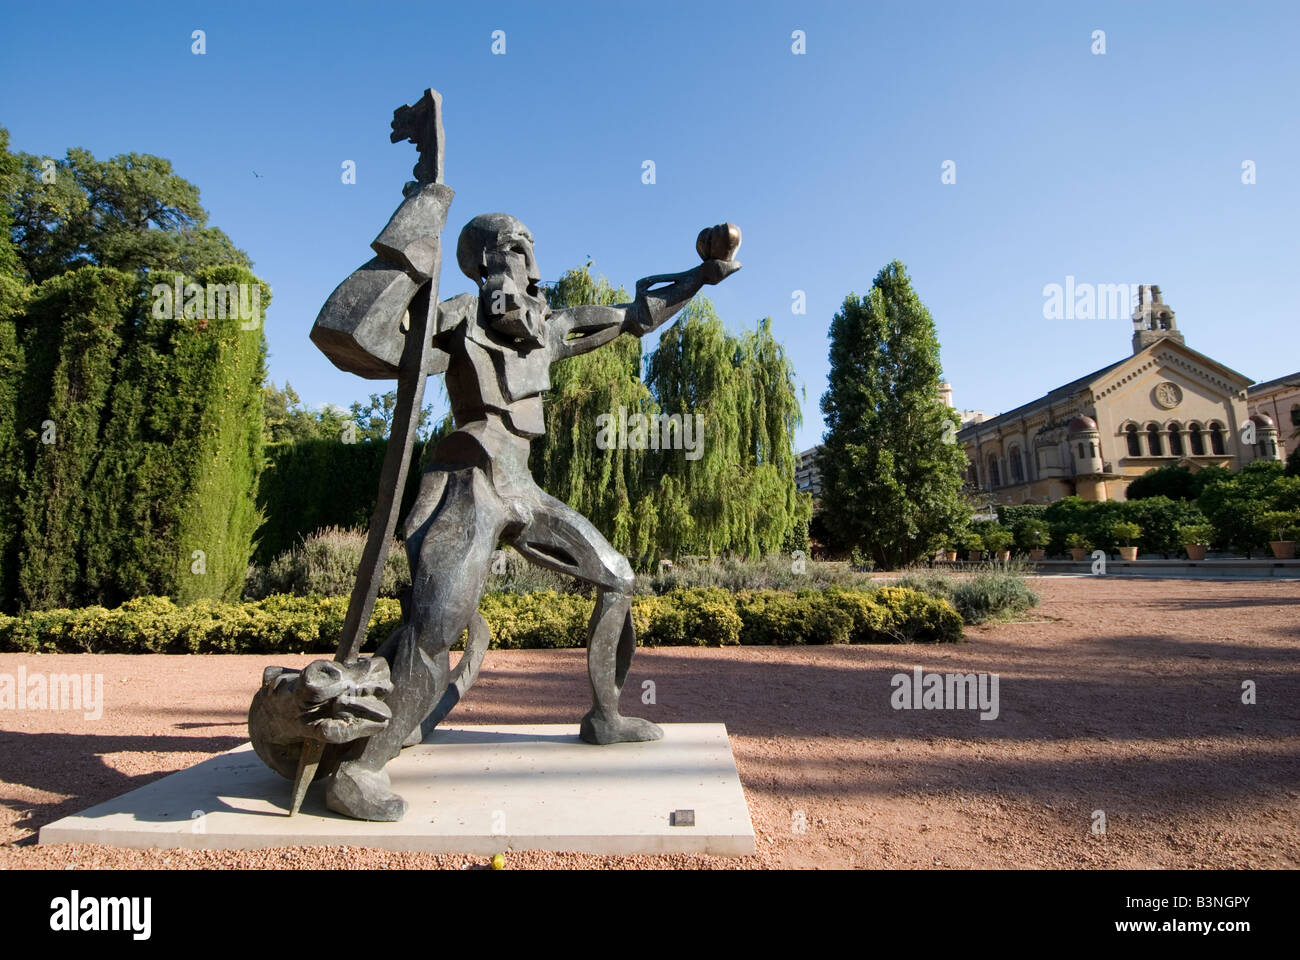 Sculpture in Jardin de las Hesperides park in Valencia Spain - Stock Image